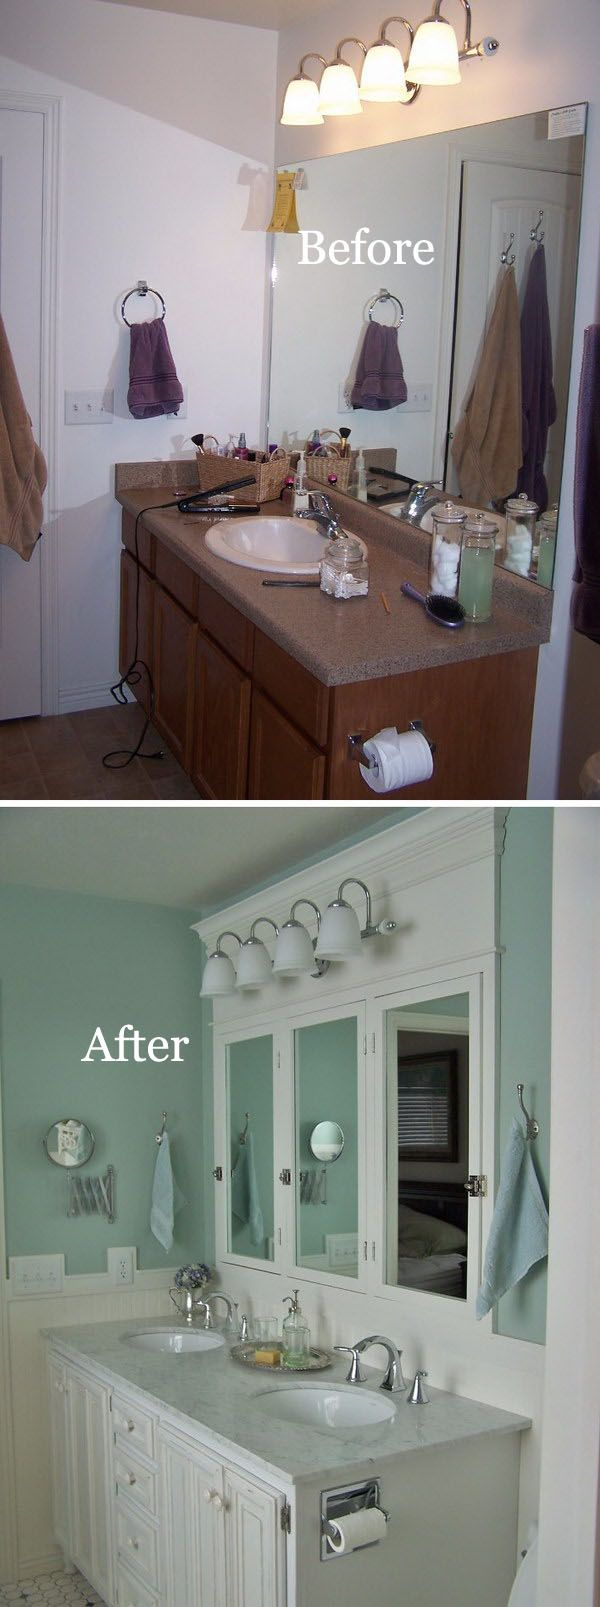 before and after 20 awesome bathroom makeovers bathroom mirror